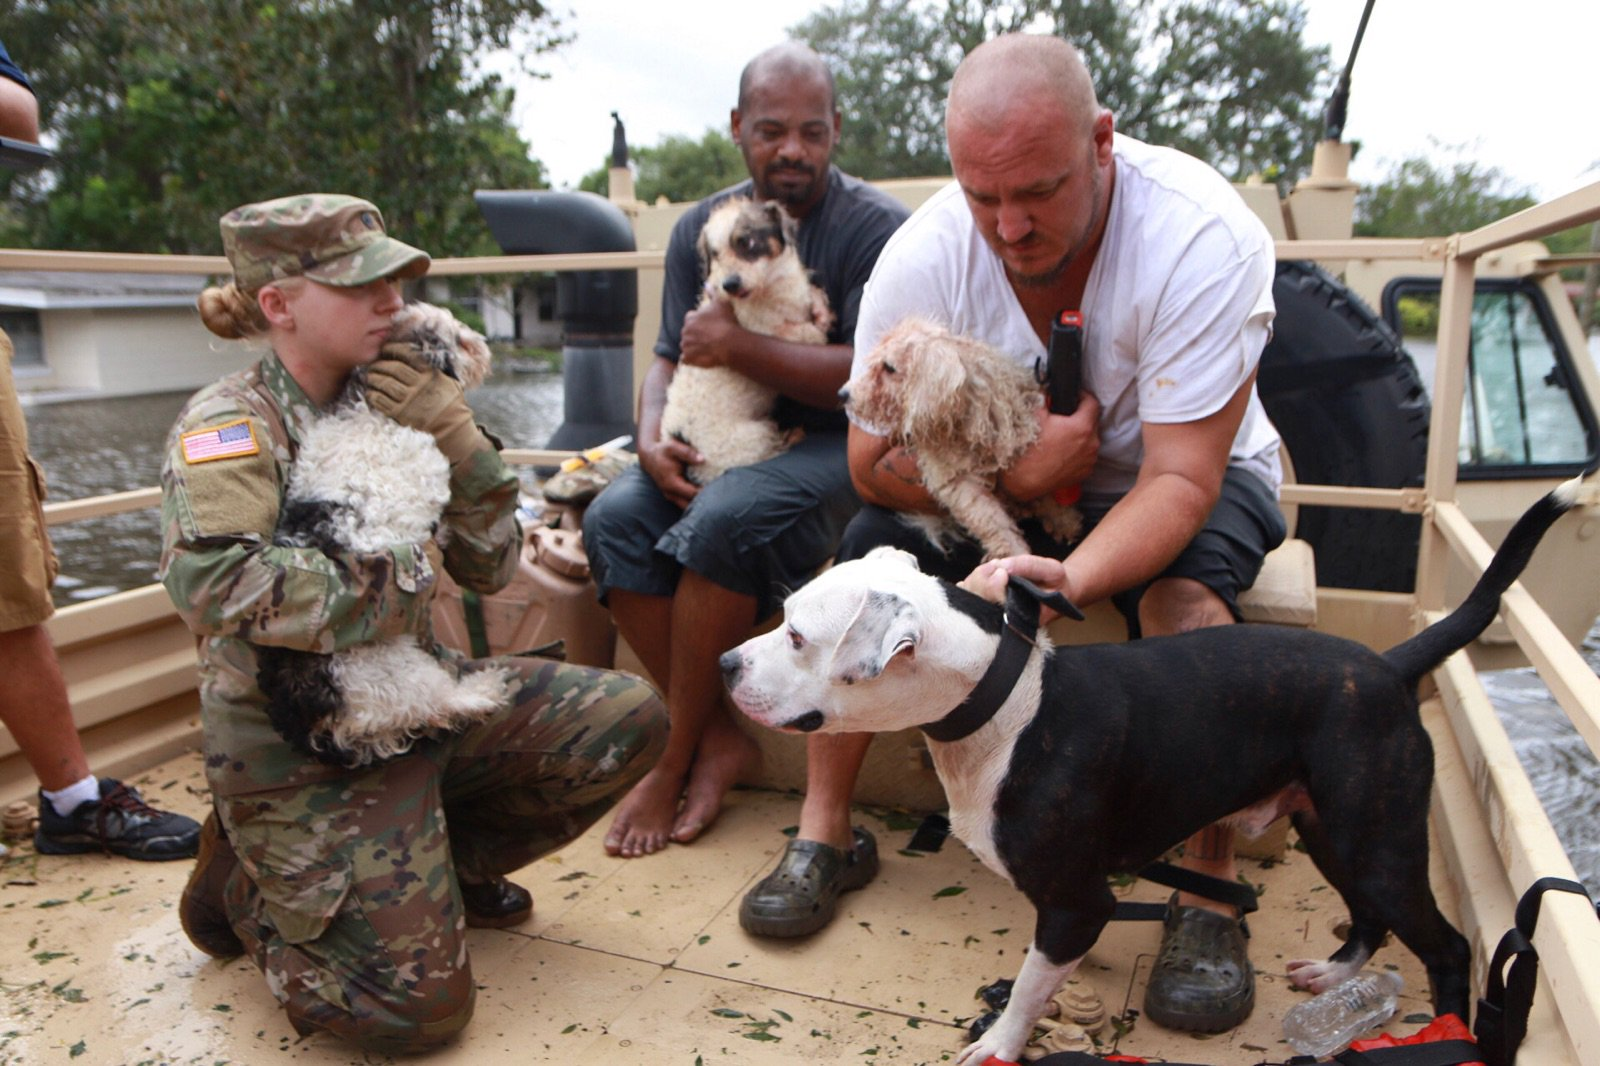 "<div class=""meta image-caption""><div class=""origin-logo origin-image none""><span>none</span></div><span class=""caption-text"">The National Guard, along with Orange County Fire and Rescue, were out rescuing pets in the storm. (OCFireRescue/Twitter)</span></div>"